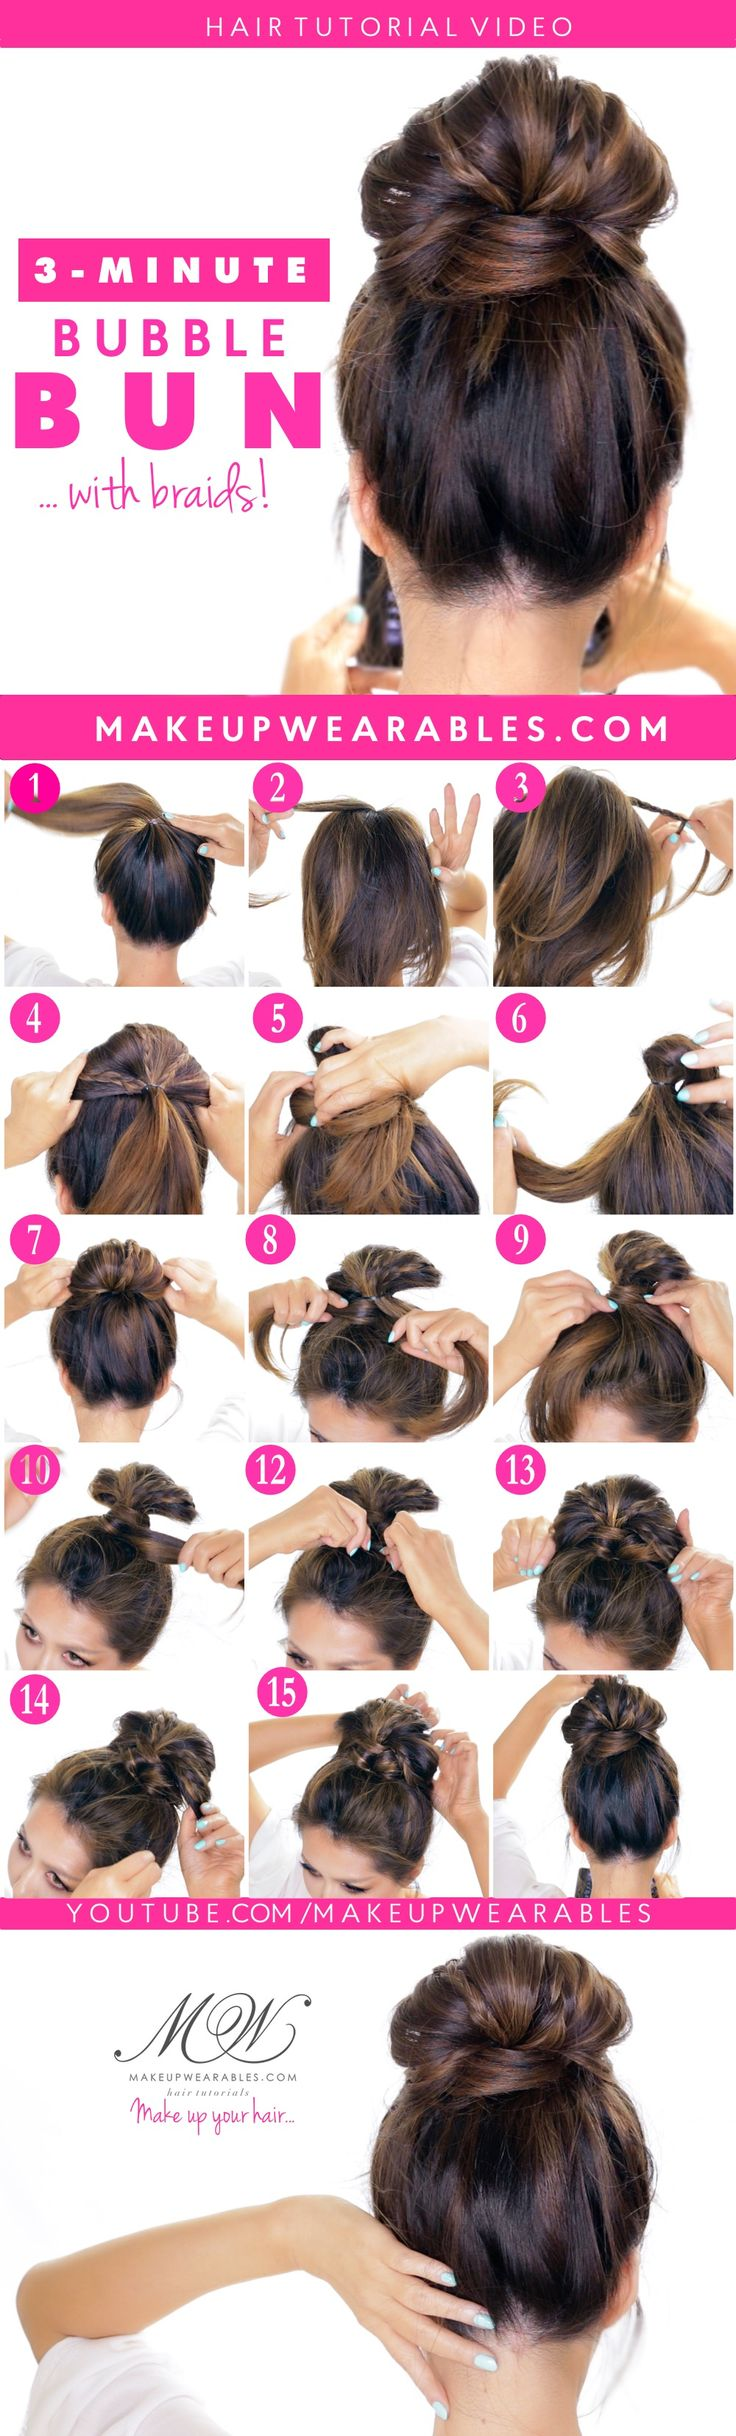 best 25+ messy bun hairstyles ideas on pinterest | messy buns